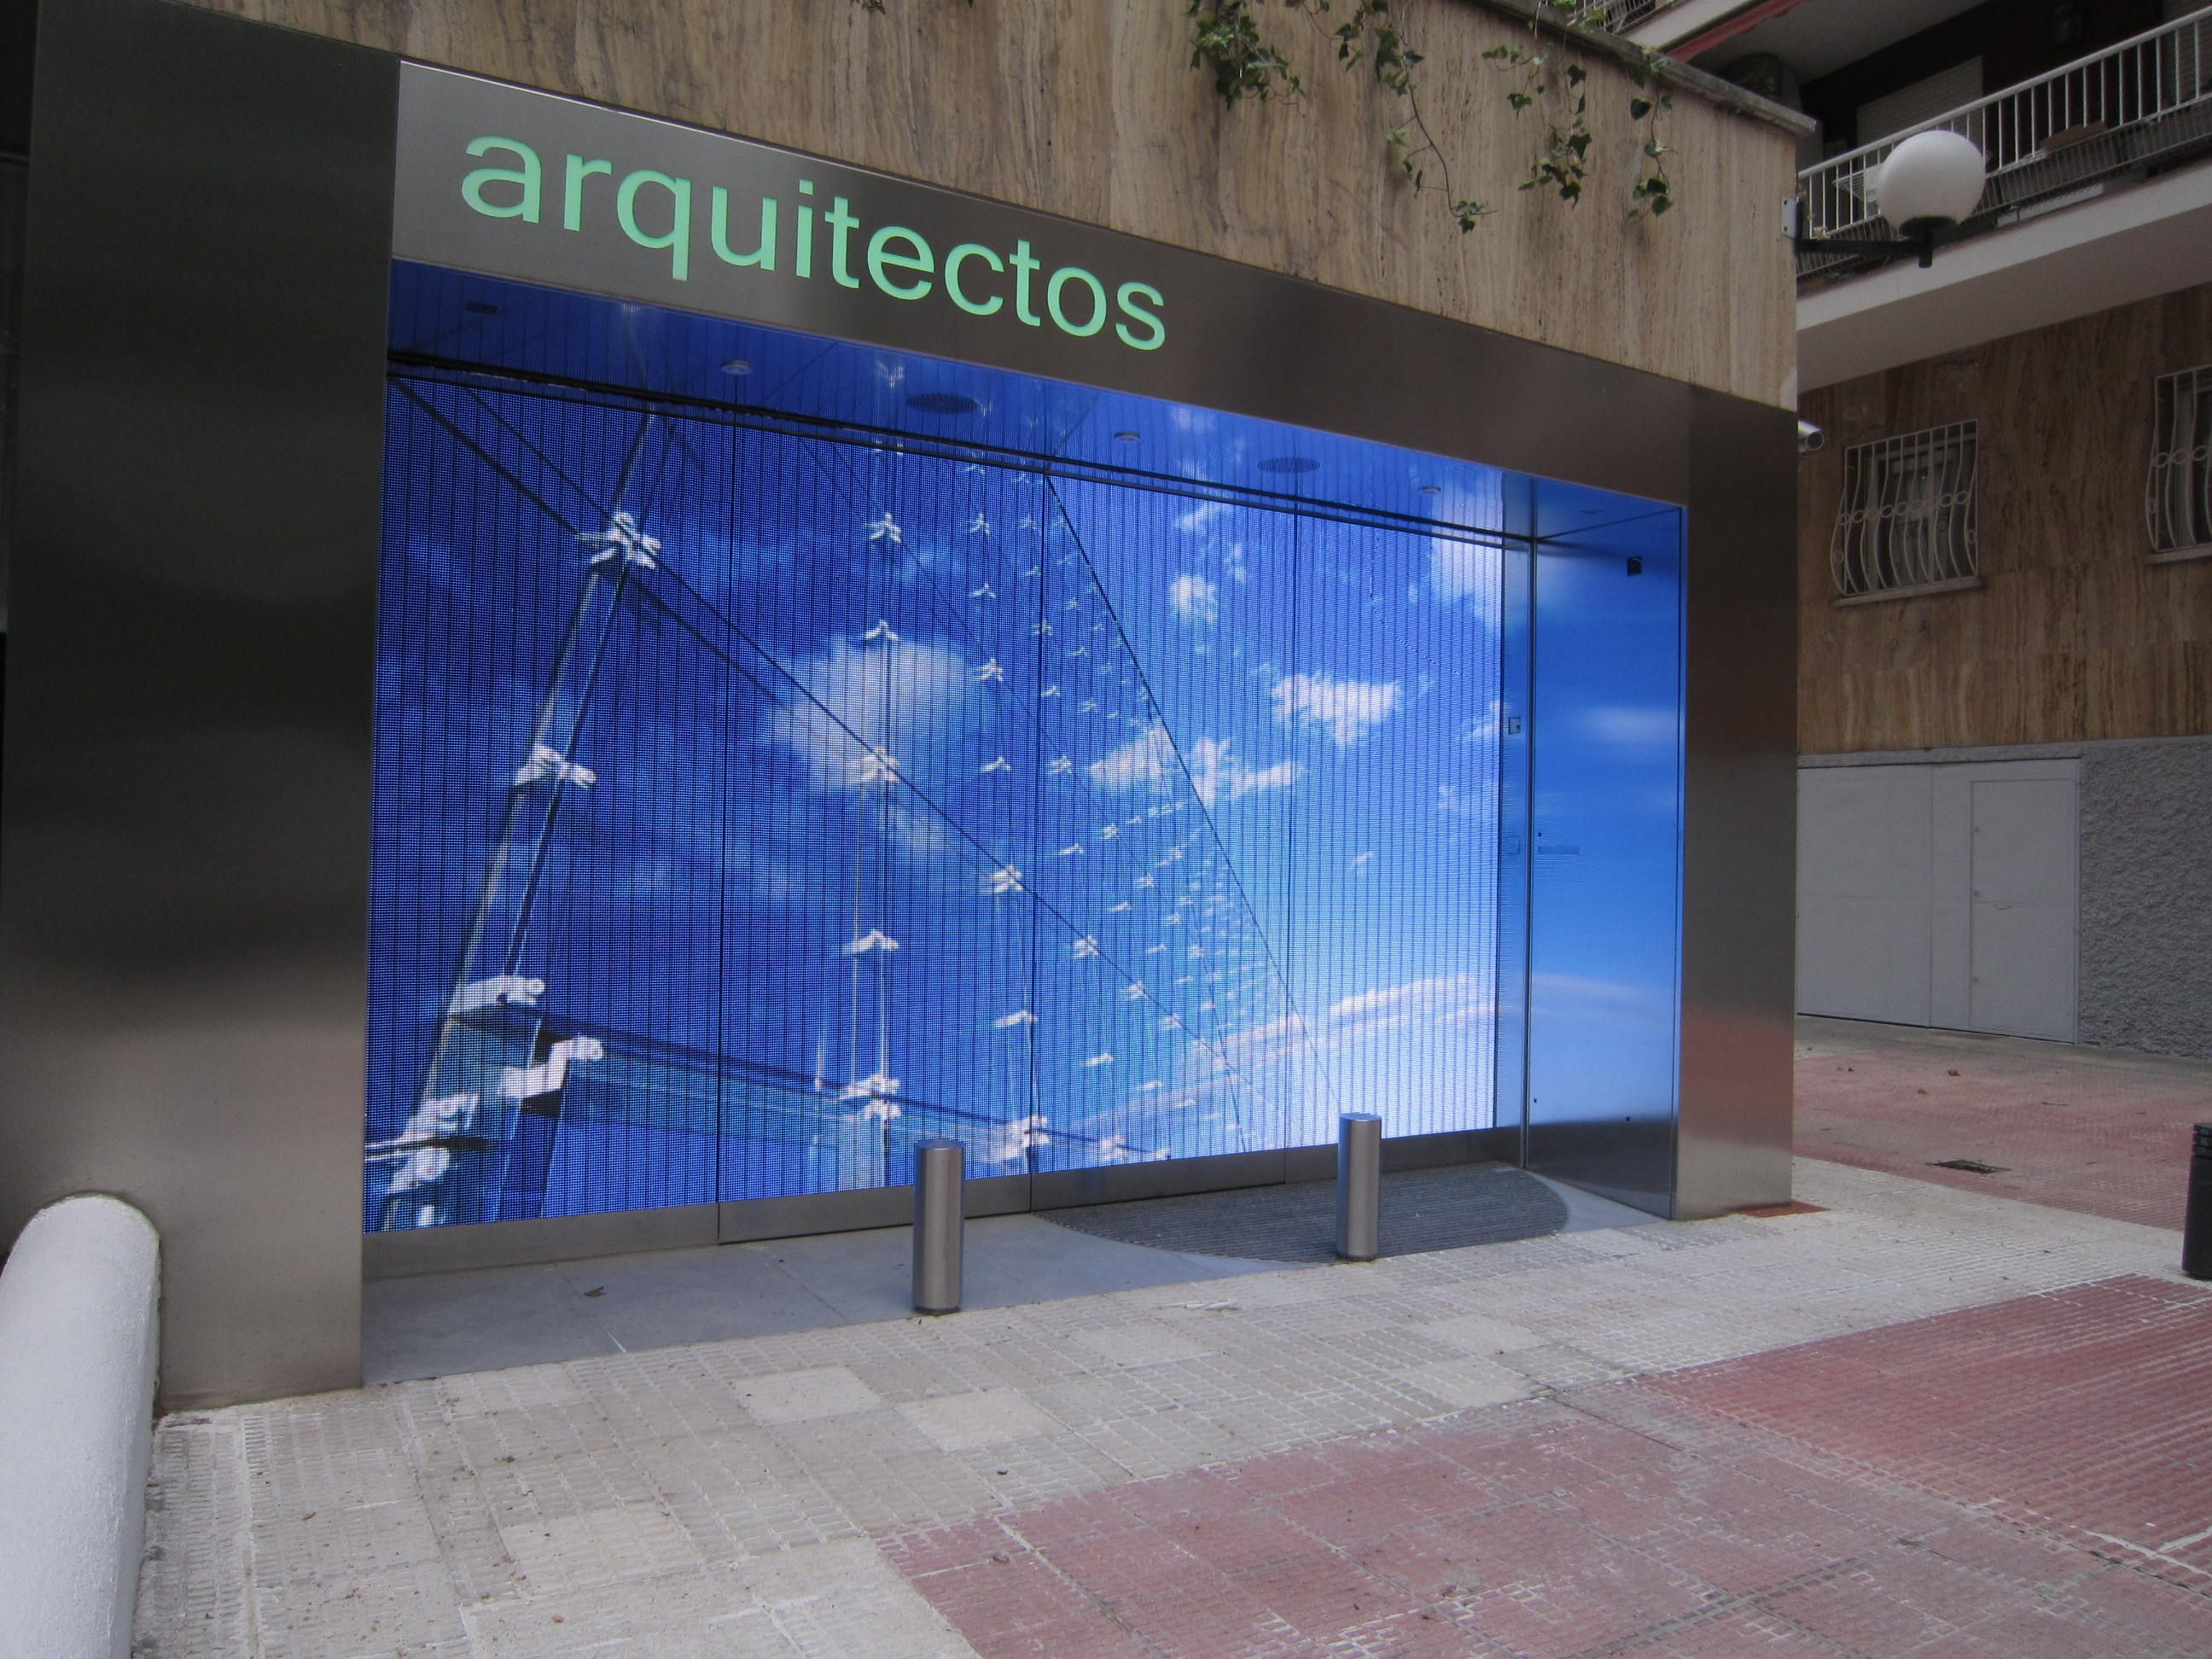 Pantalla led indoor p xel pitch 7 62mm encapsulado smd grupo riofr o madrid pinterest - Grupo riofrio ...